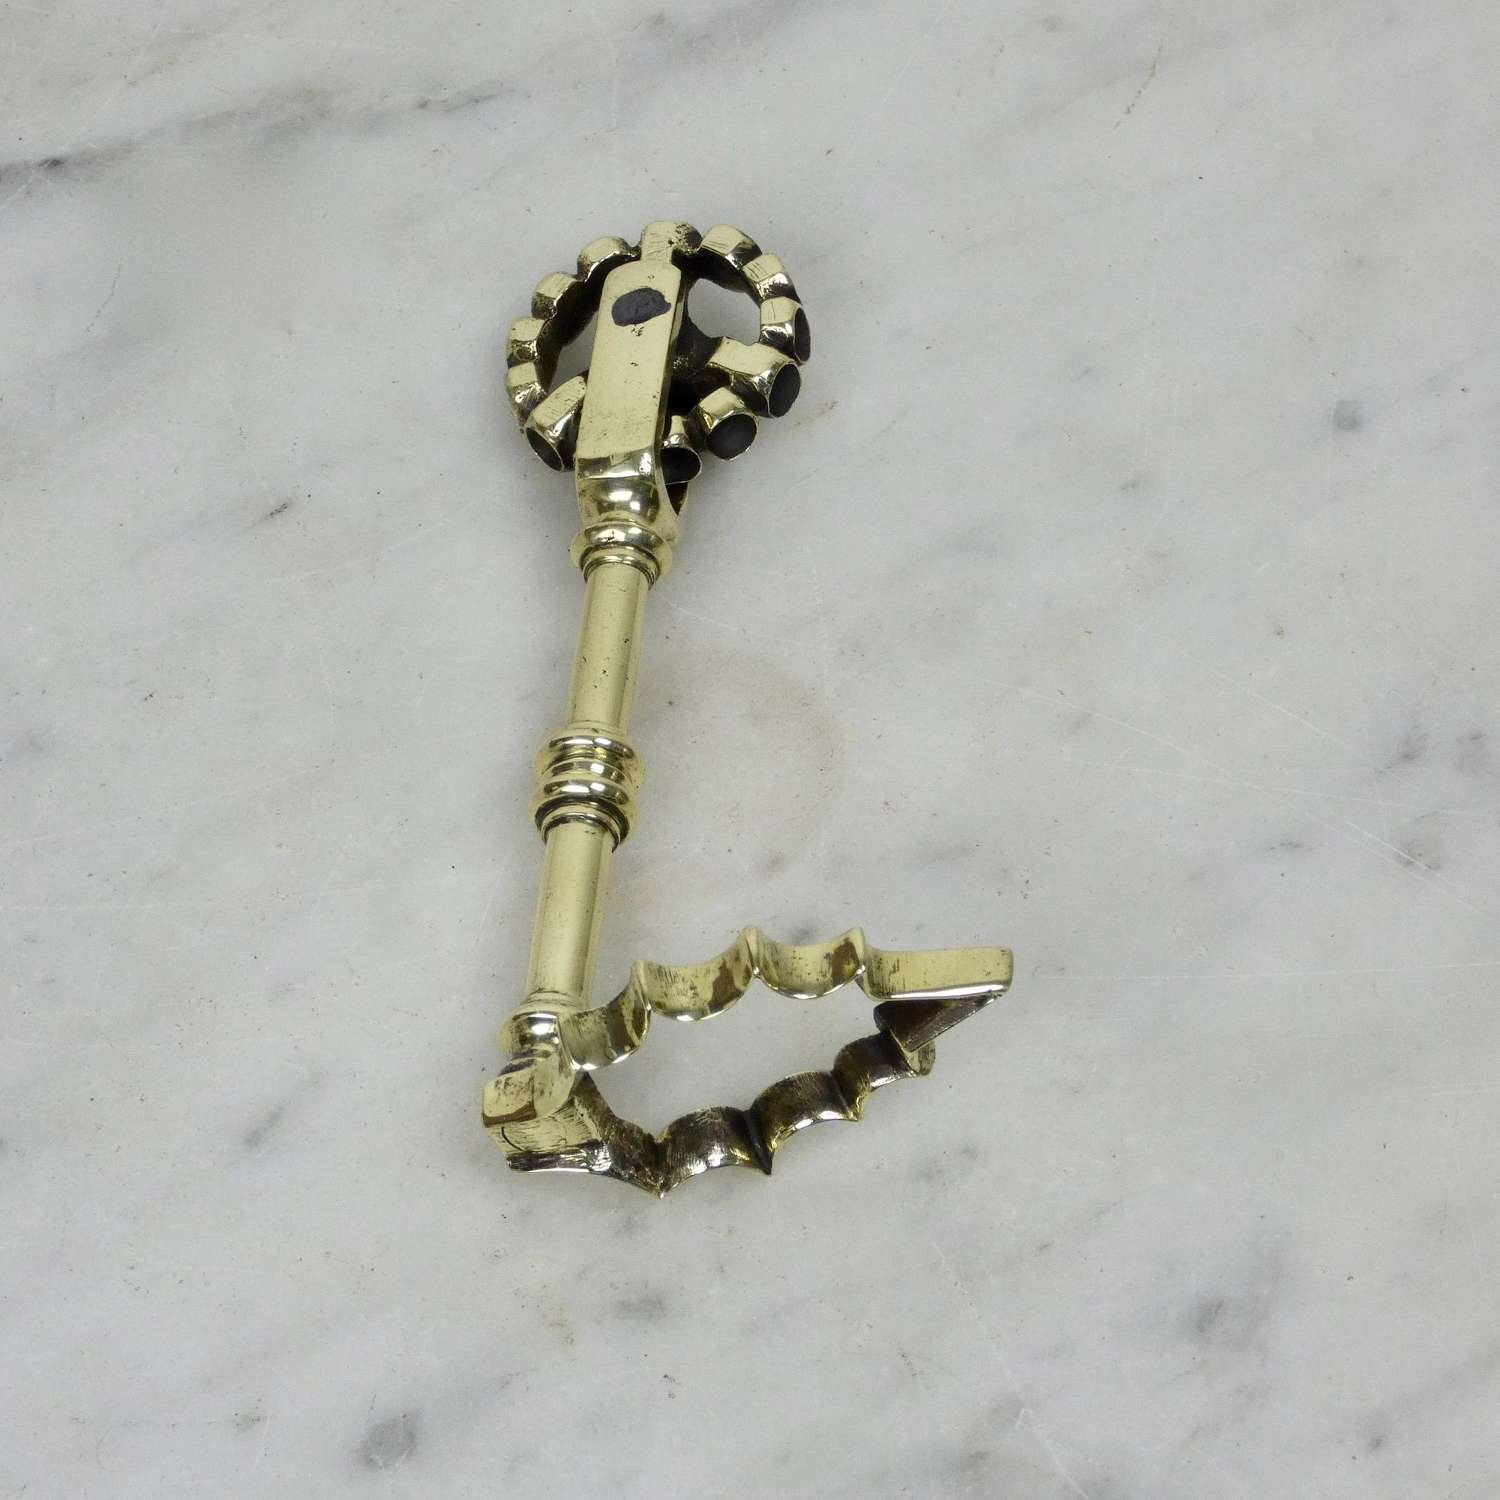 Brass pastry tool with unusual wheel